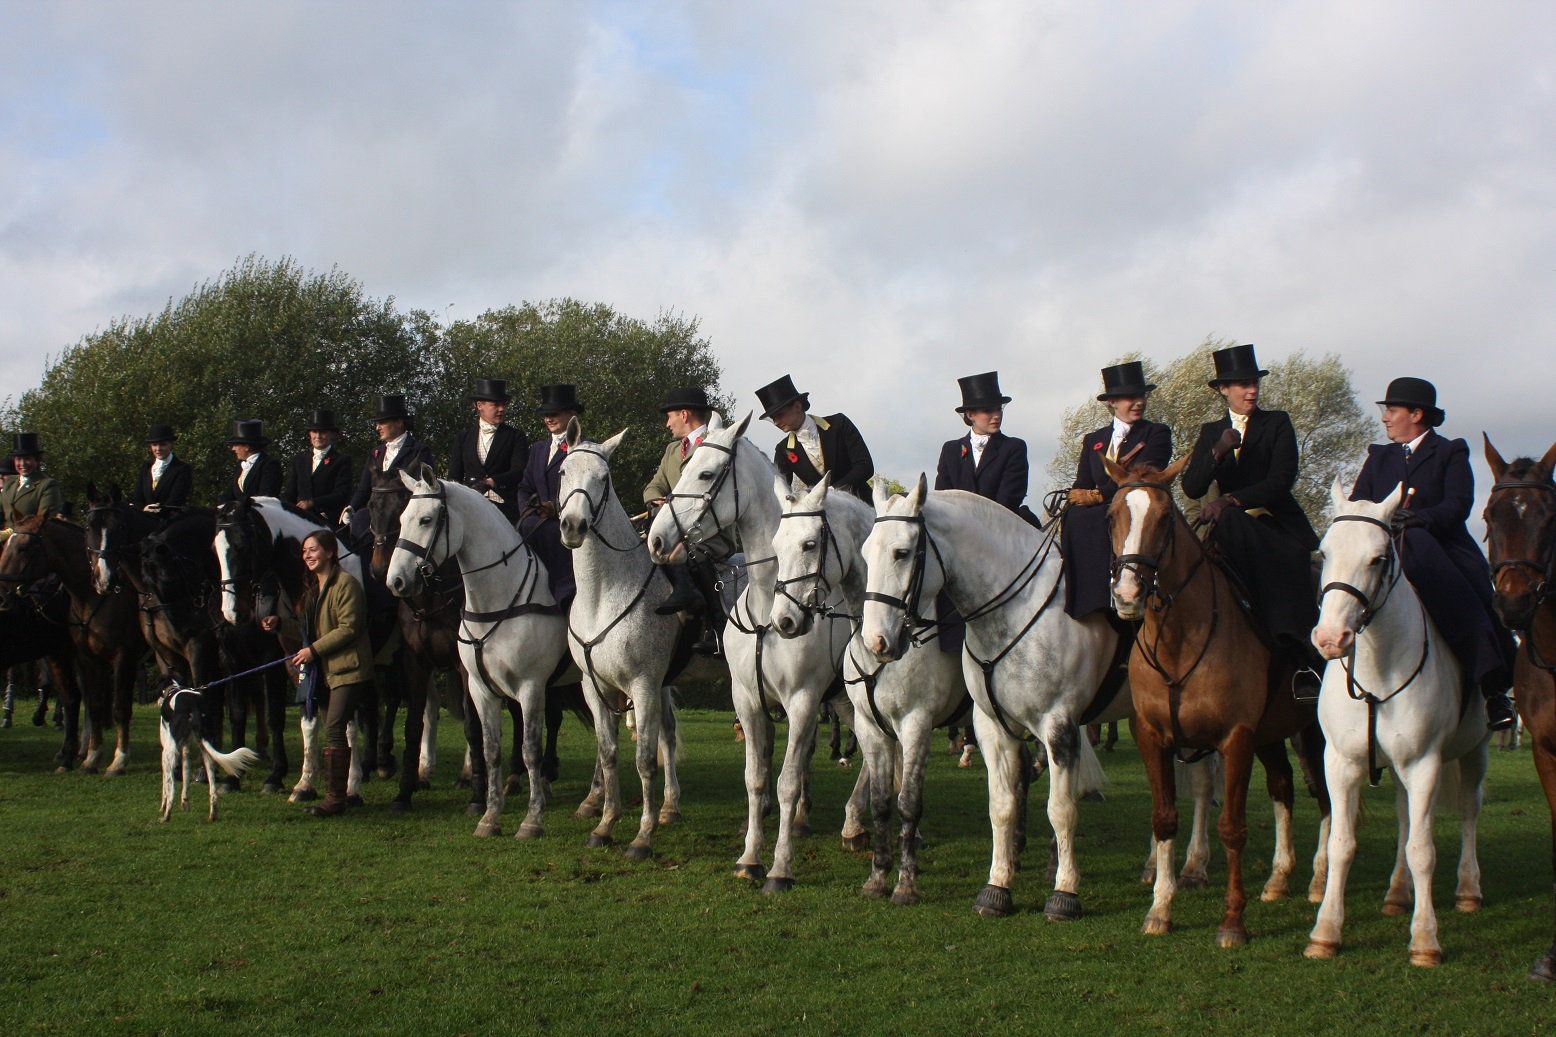 IMG 3294 Copy - Quorn Hunt Opening Meet Friday 25th October 2013